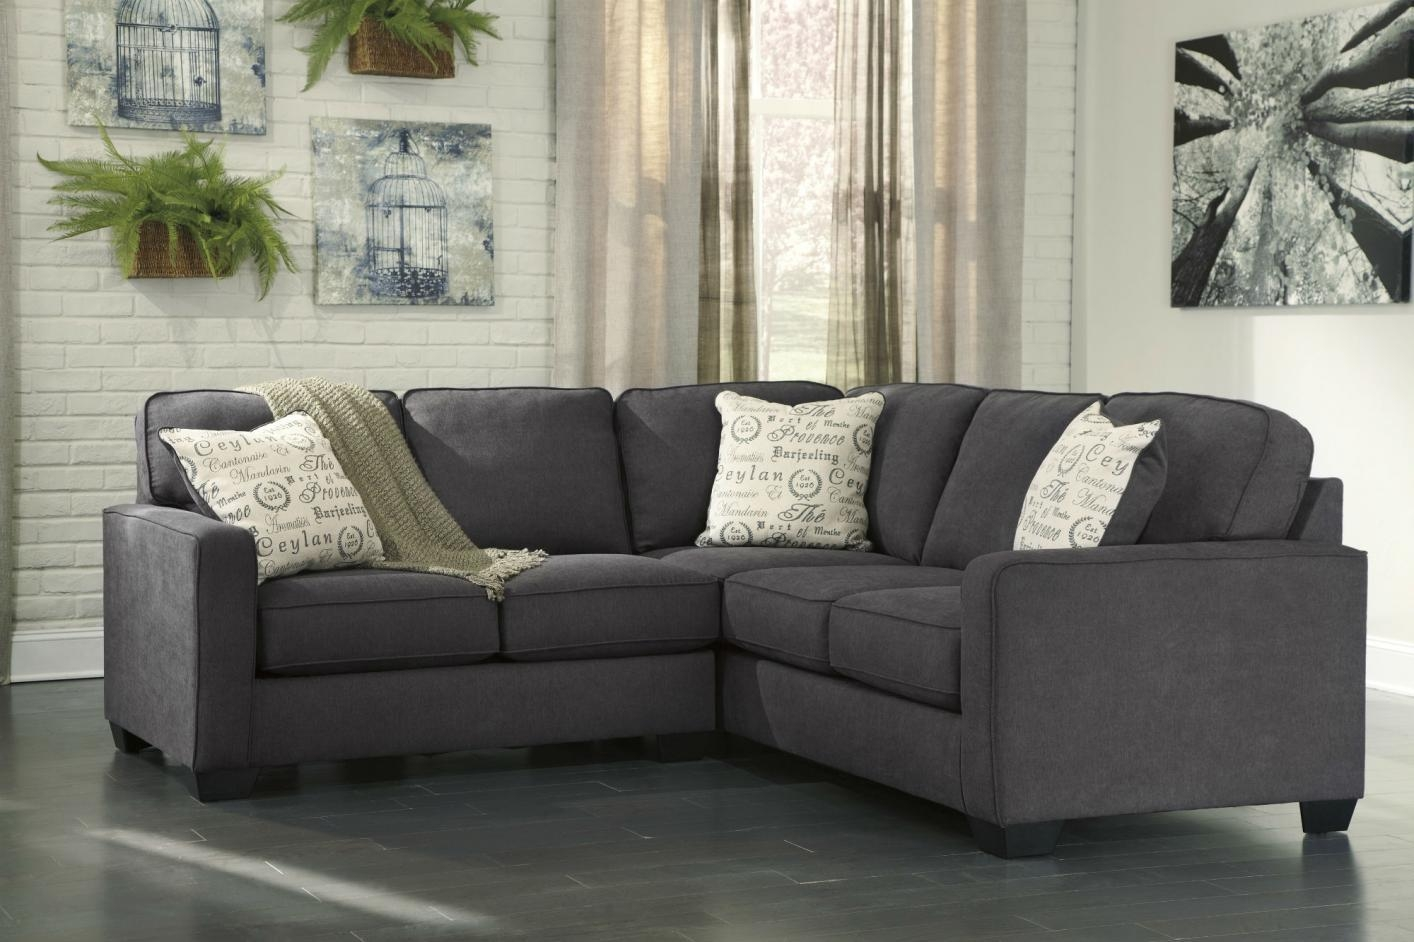 Gray Sectional Sofa Ashley Furniture | Tehranmix Decoration Intended For Charcoal Gray Sectional Sofas (Image 7 of 20)